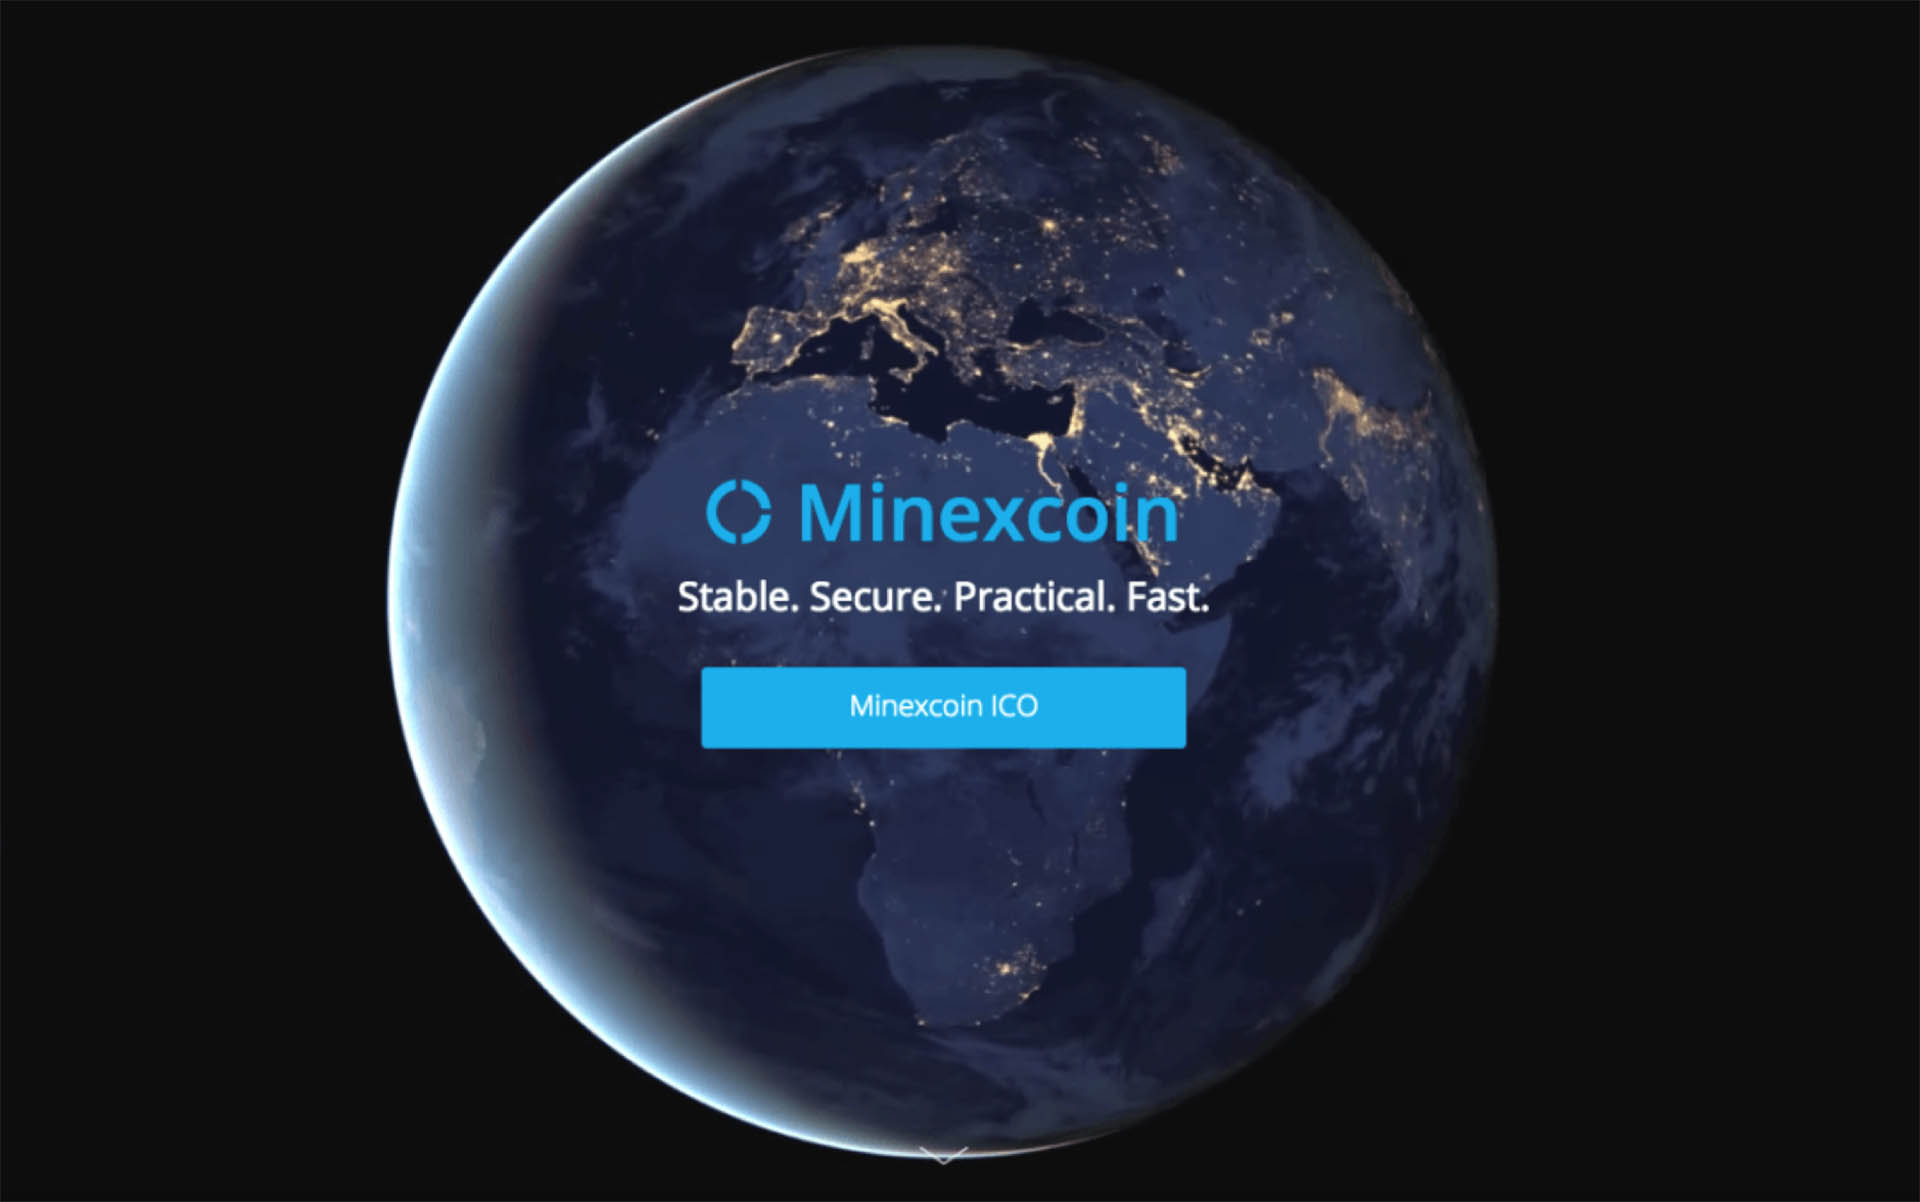 MineCoin Rebrands to 'MinexCoin', Launches Bounty Campaign as Second ICO Round Nears